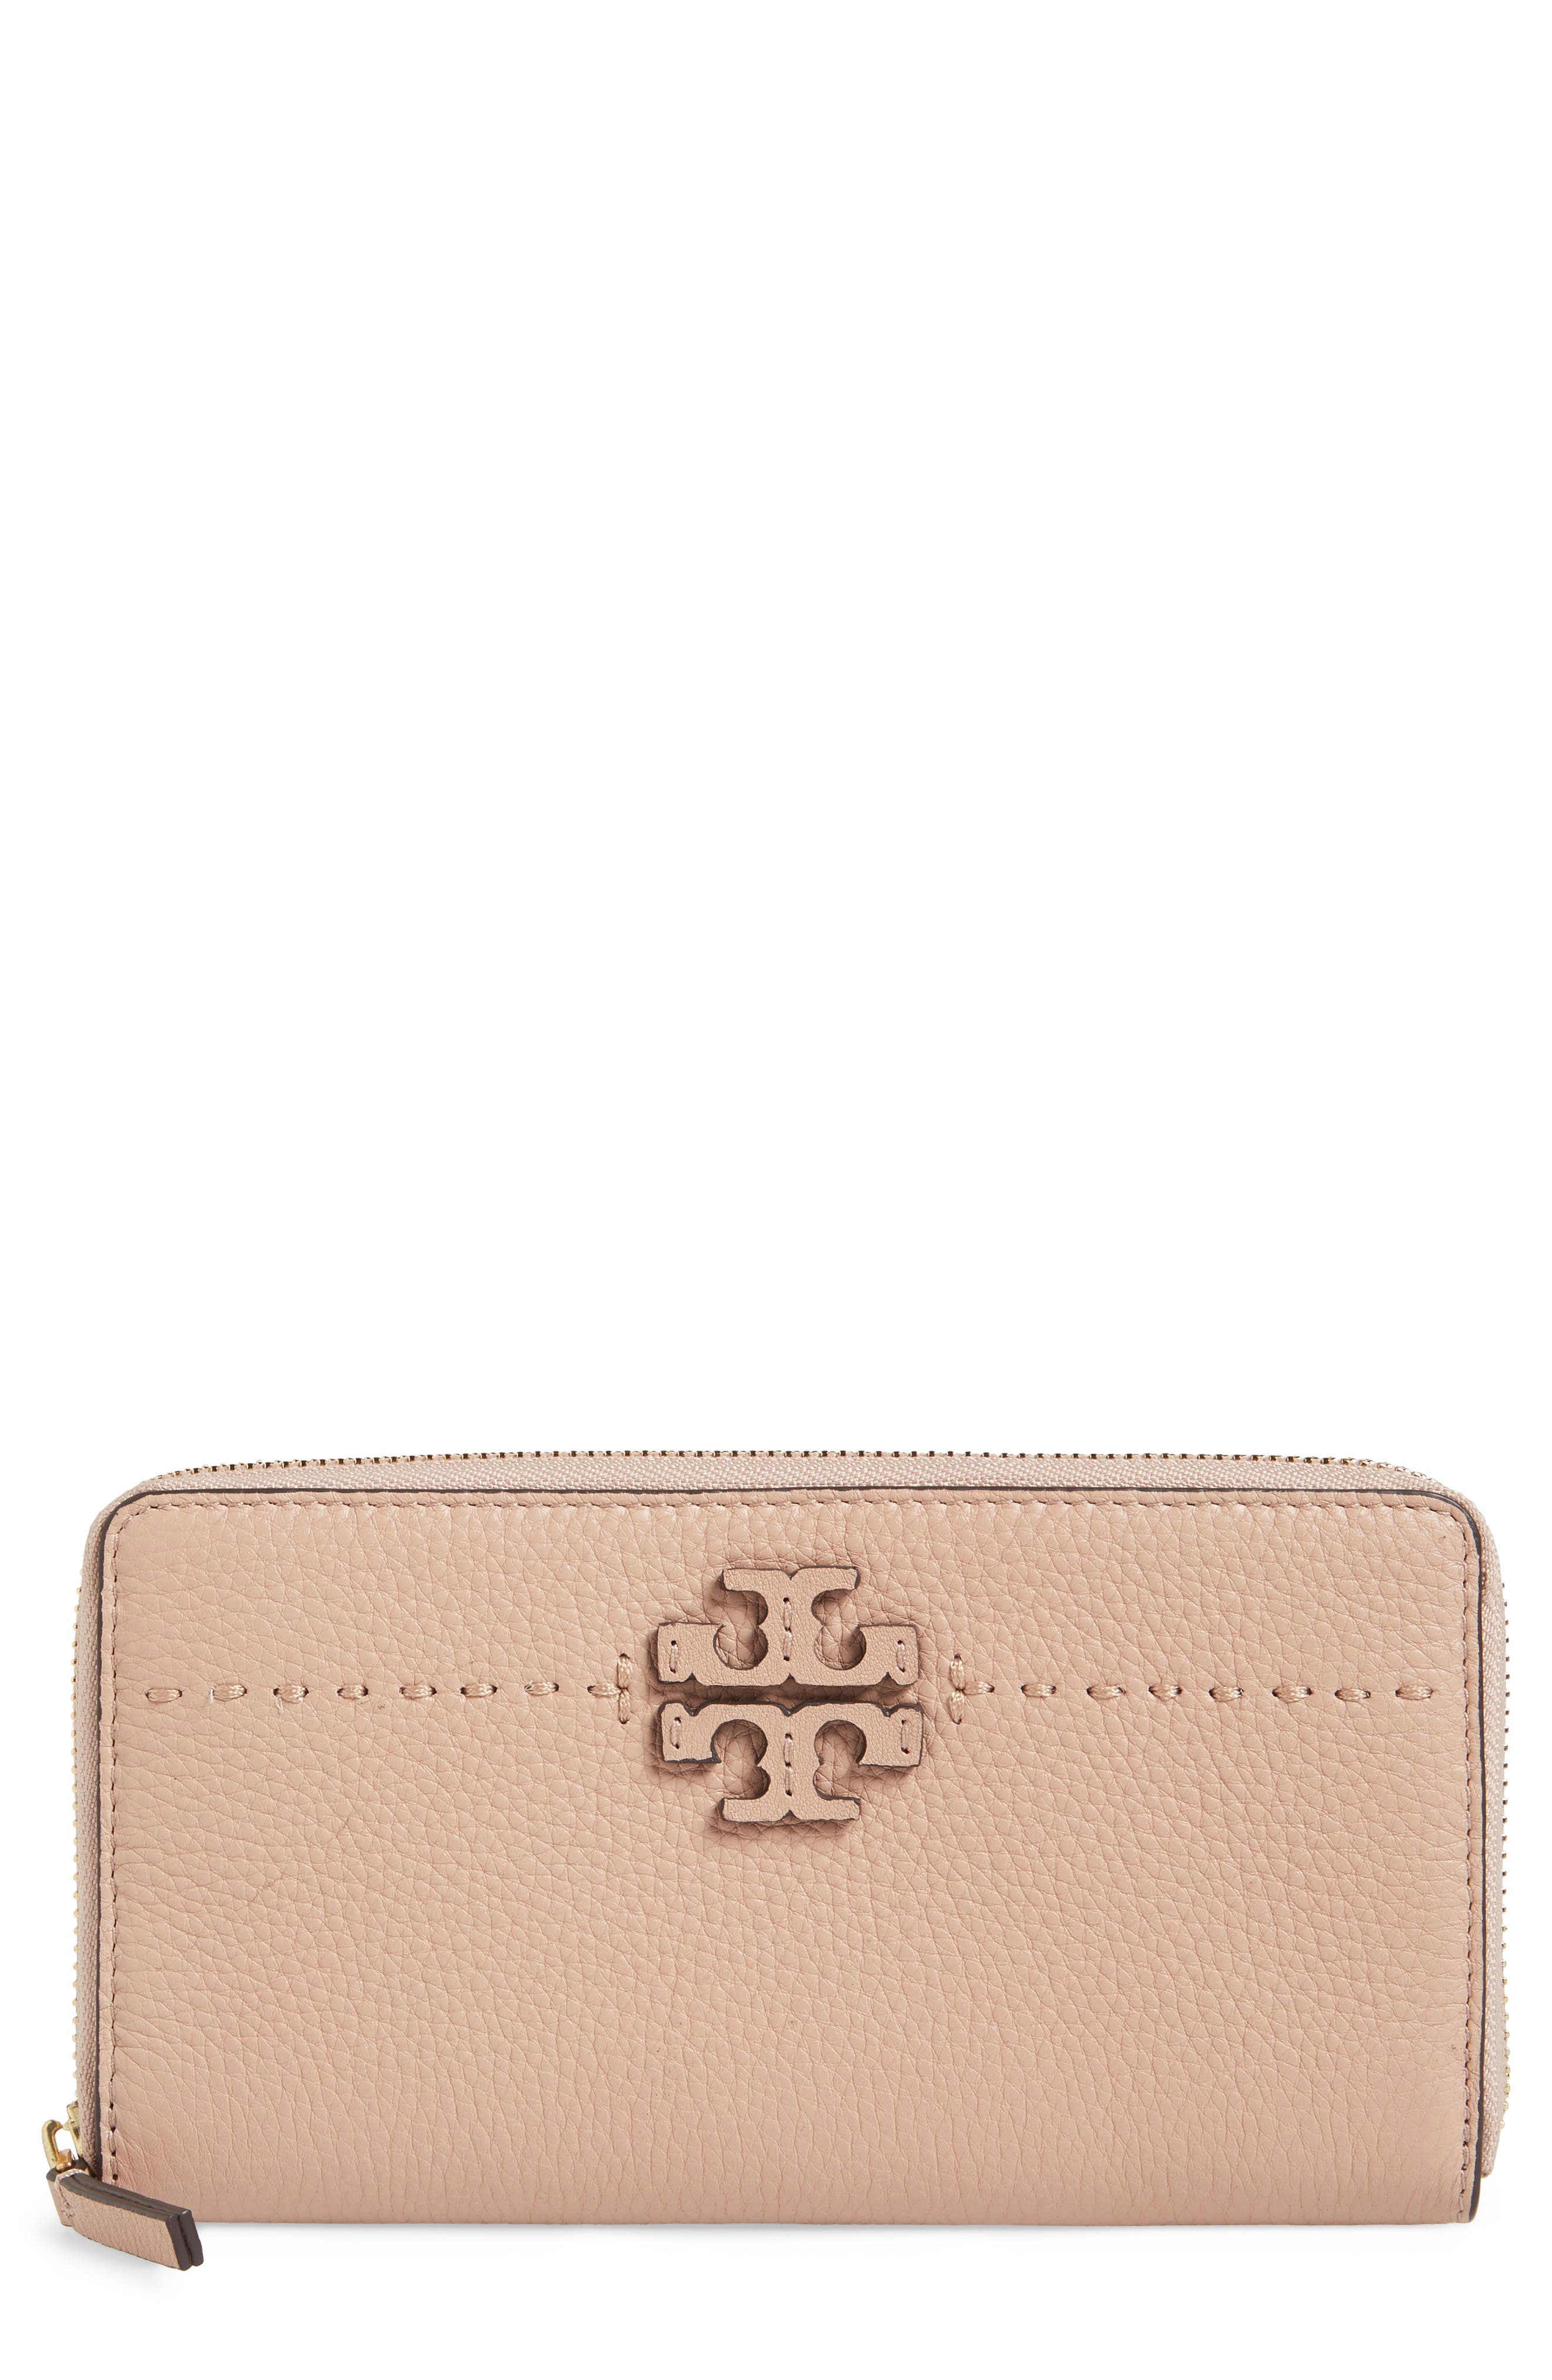 McGraw Leather Continental Zip Wallet,                             Main thumbnail 1, color,                             Devon Sand